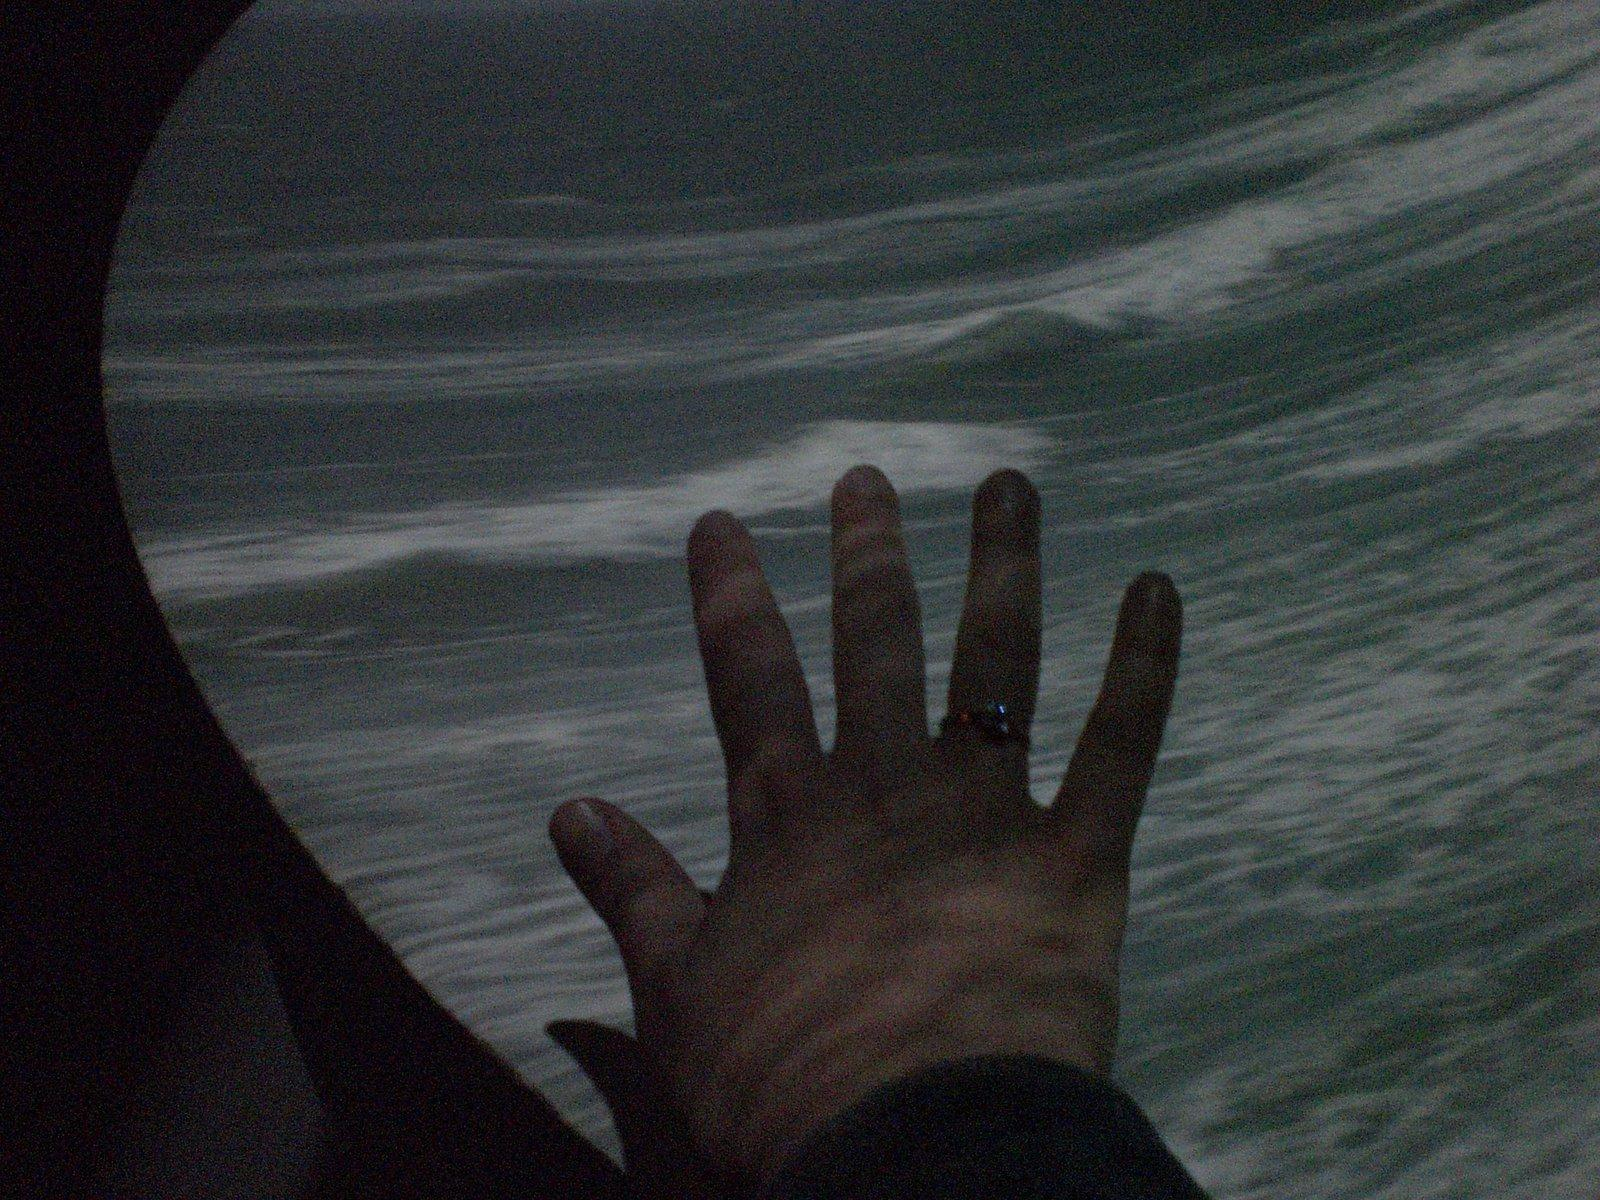 I took it at the camera obscura down at Ocean Beach.